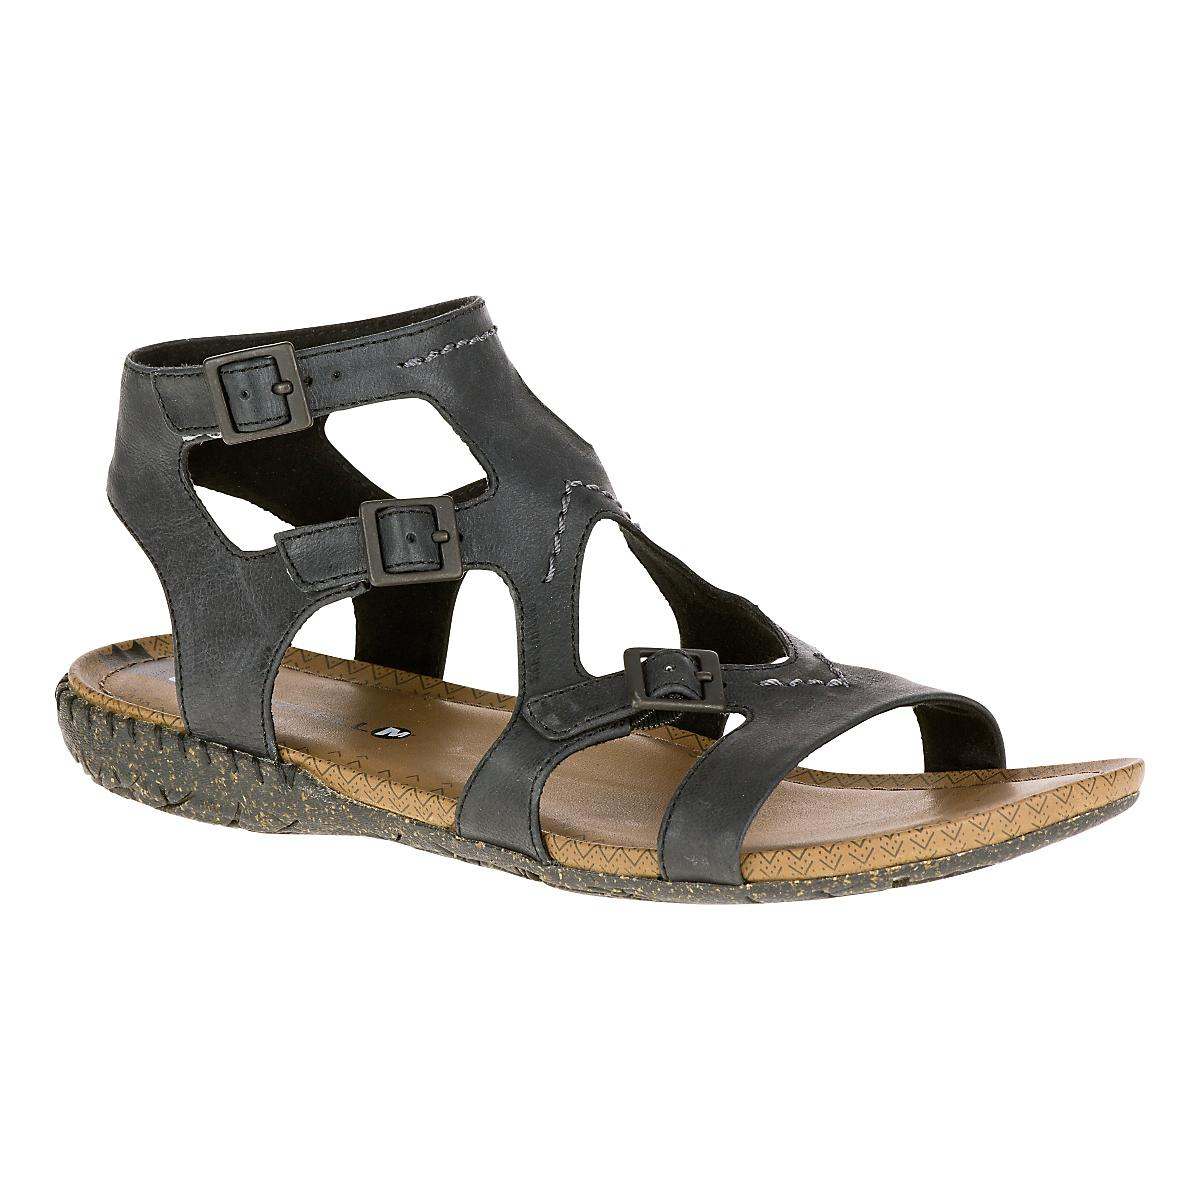 c07f19bc144 Womens Merrell Whisper Buckle Sandals Shoe at Road Runner Sports